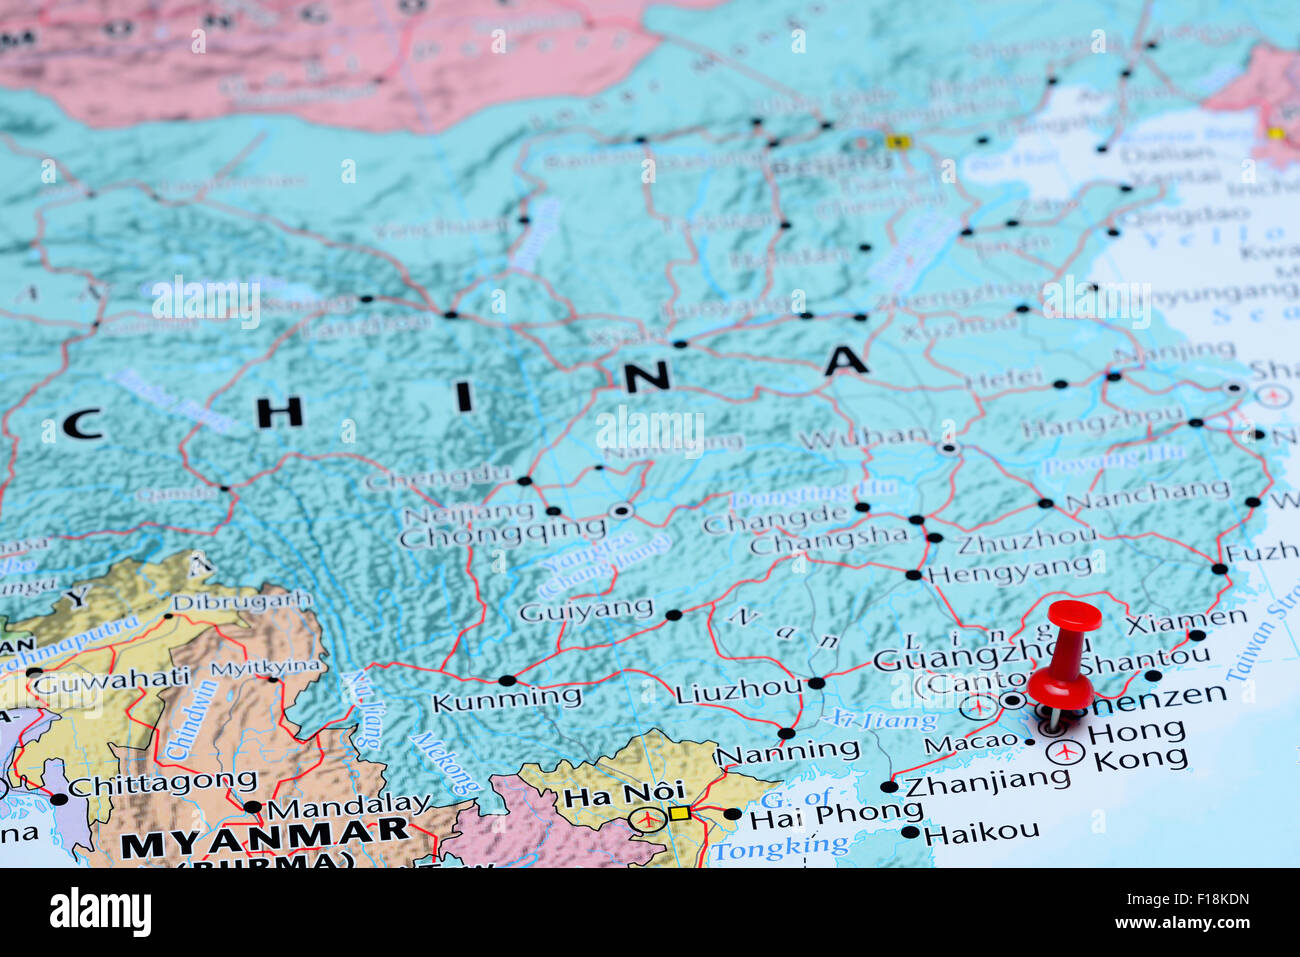 Map Of Asia Hong Kong.Hong Kong Pinned On A Map Of Asia Stock Photo 86857393 Alamy